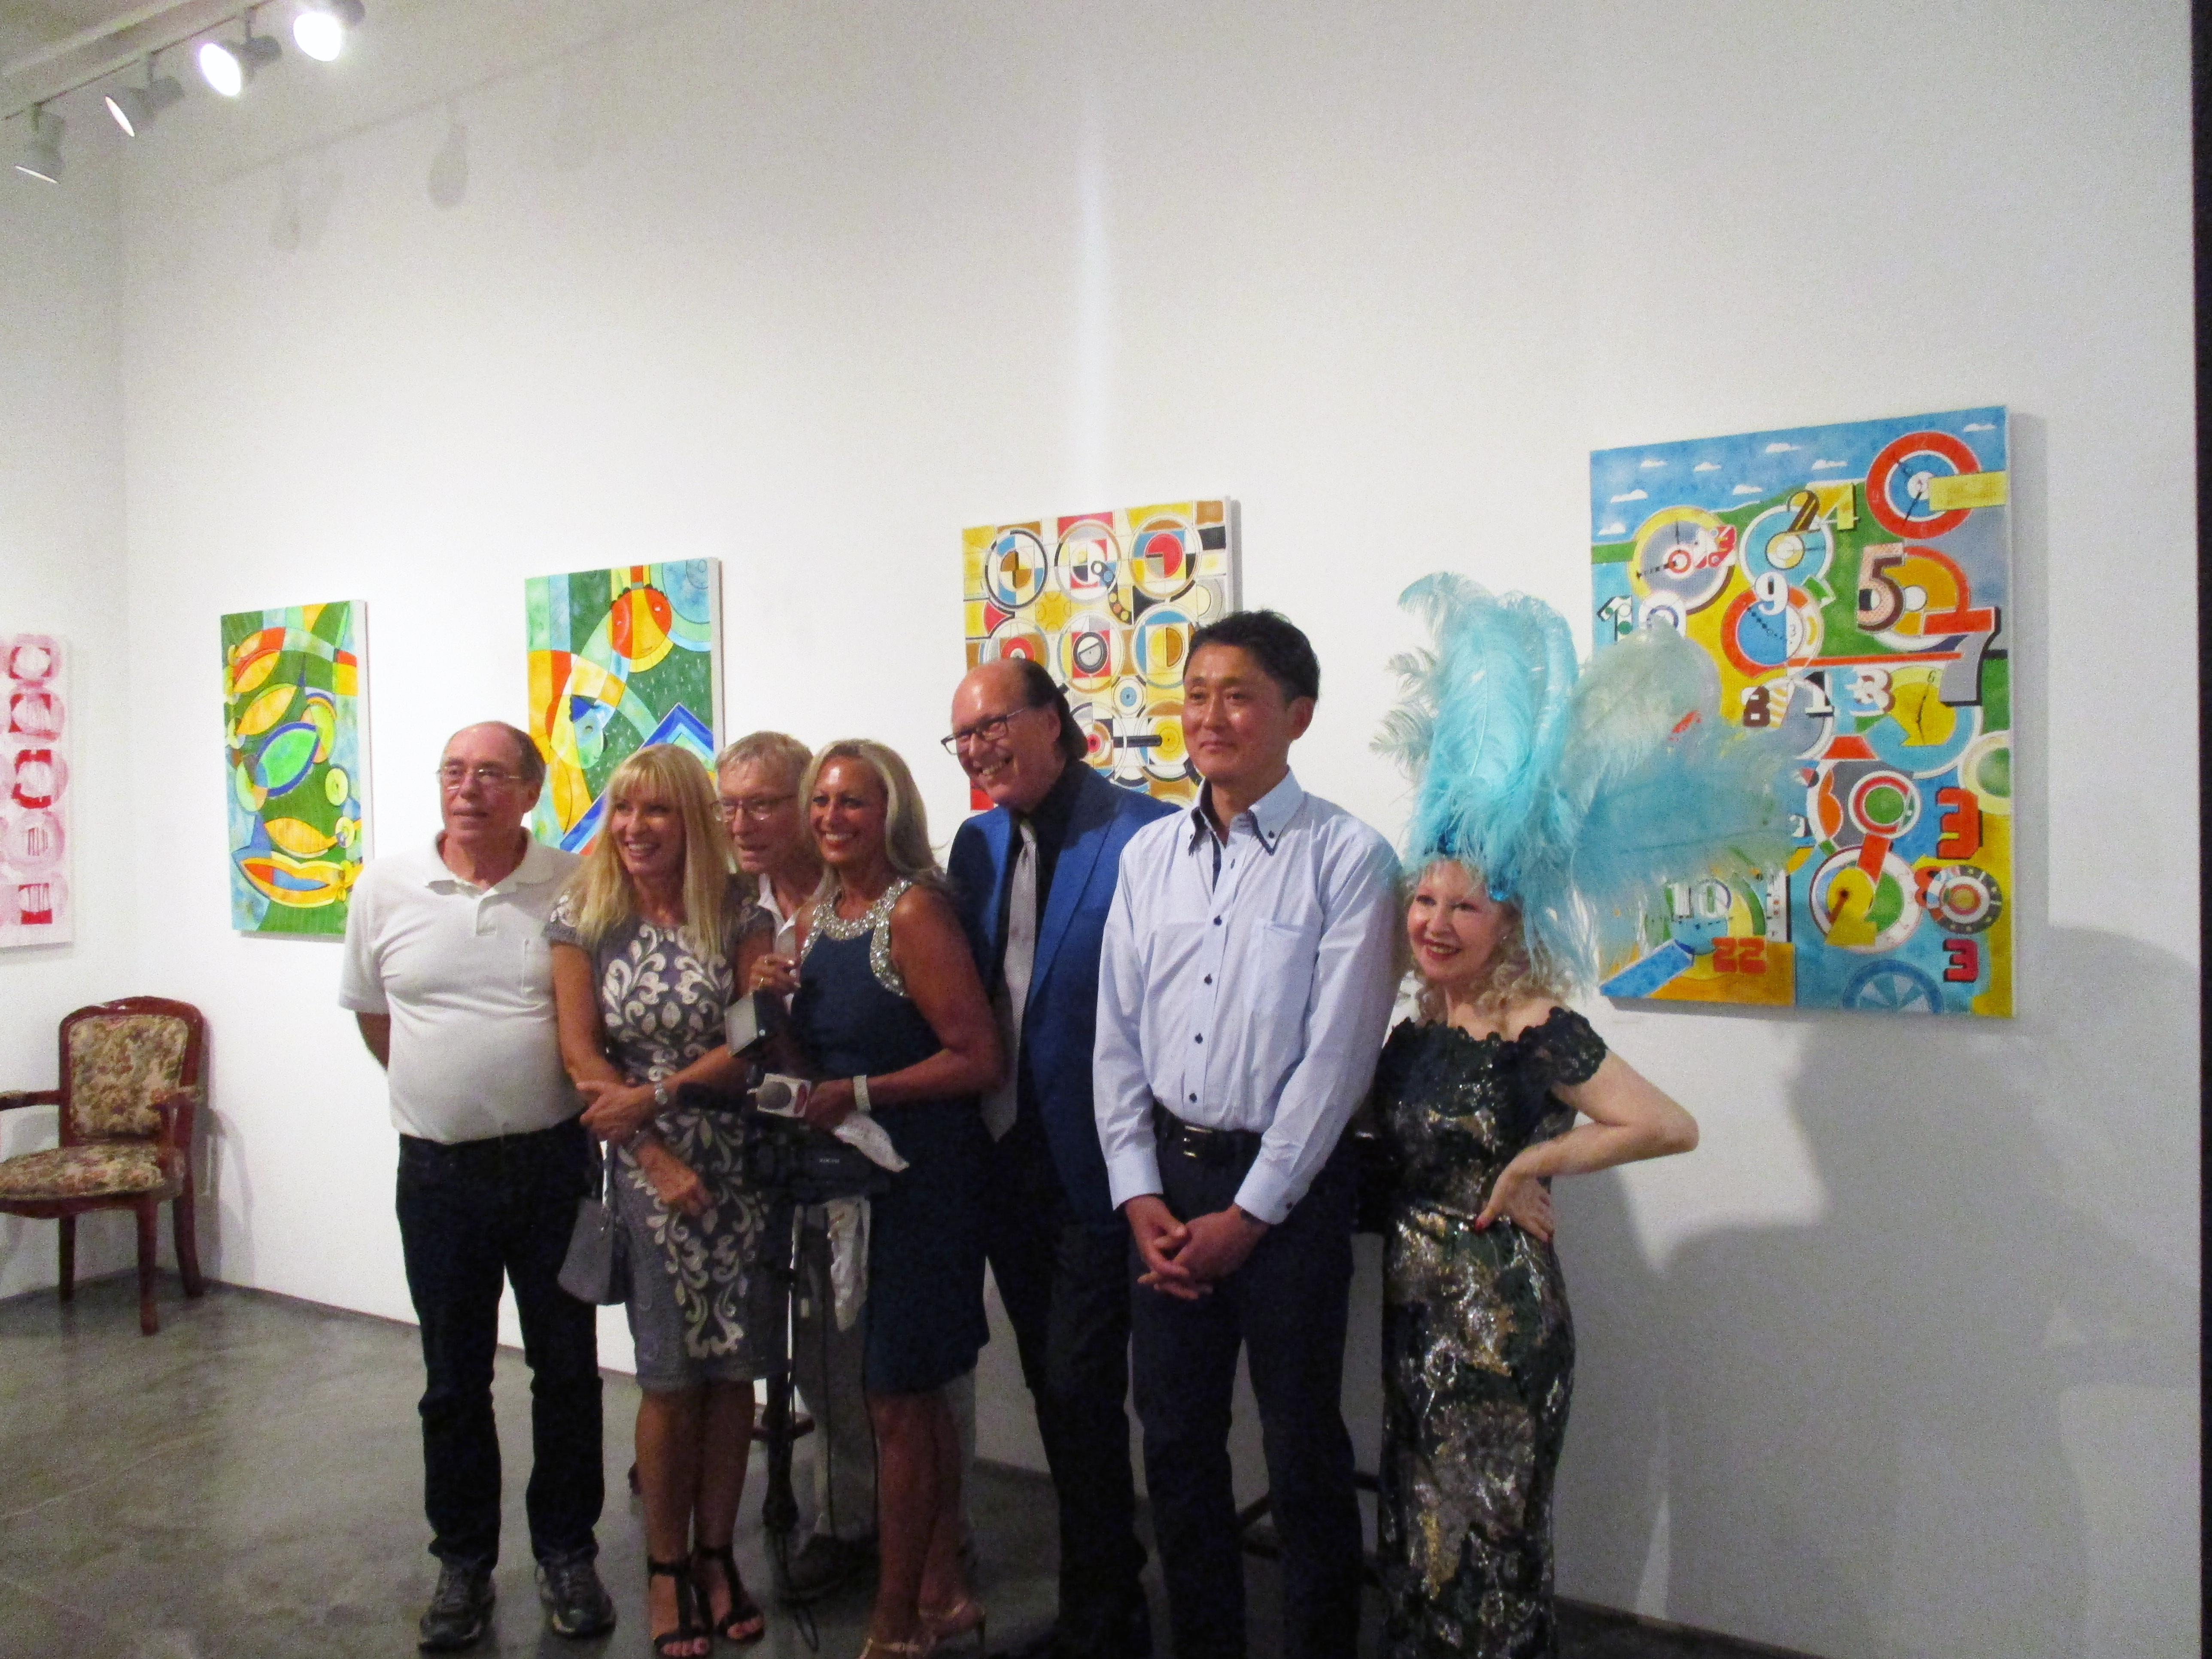 KRISTAL AND ARTISTS